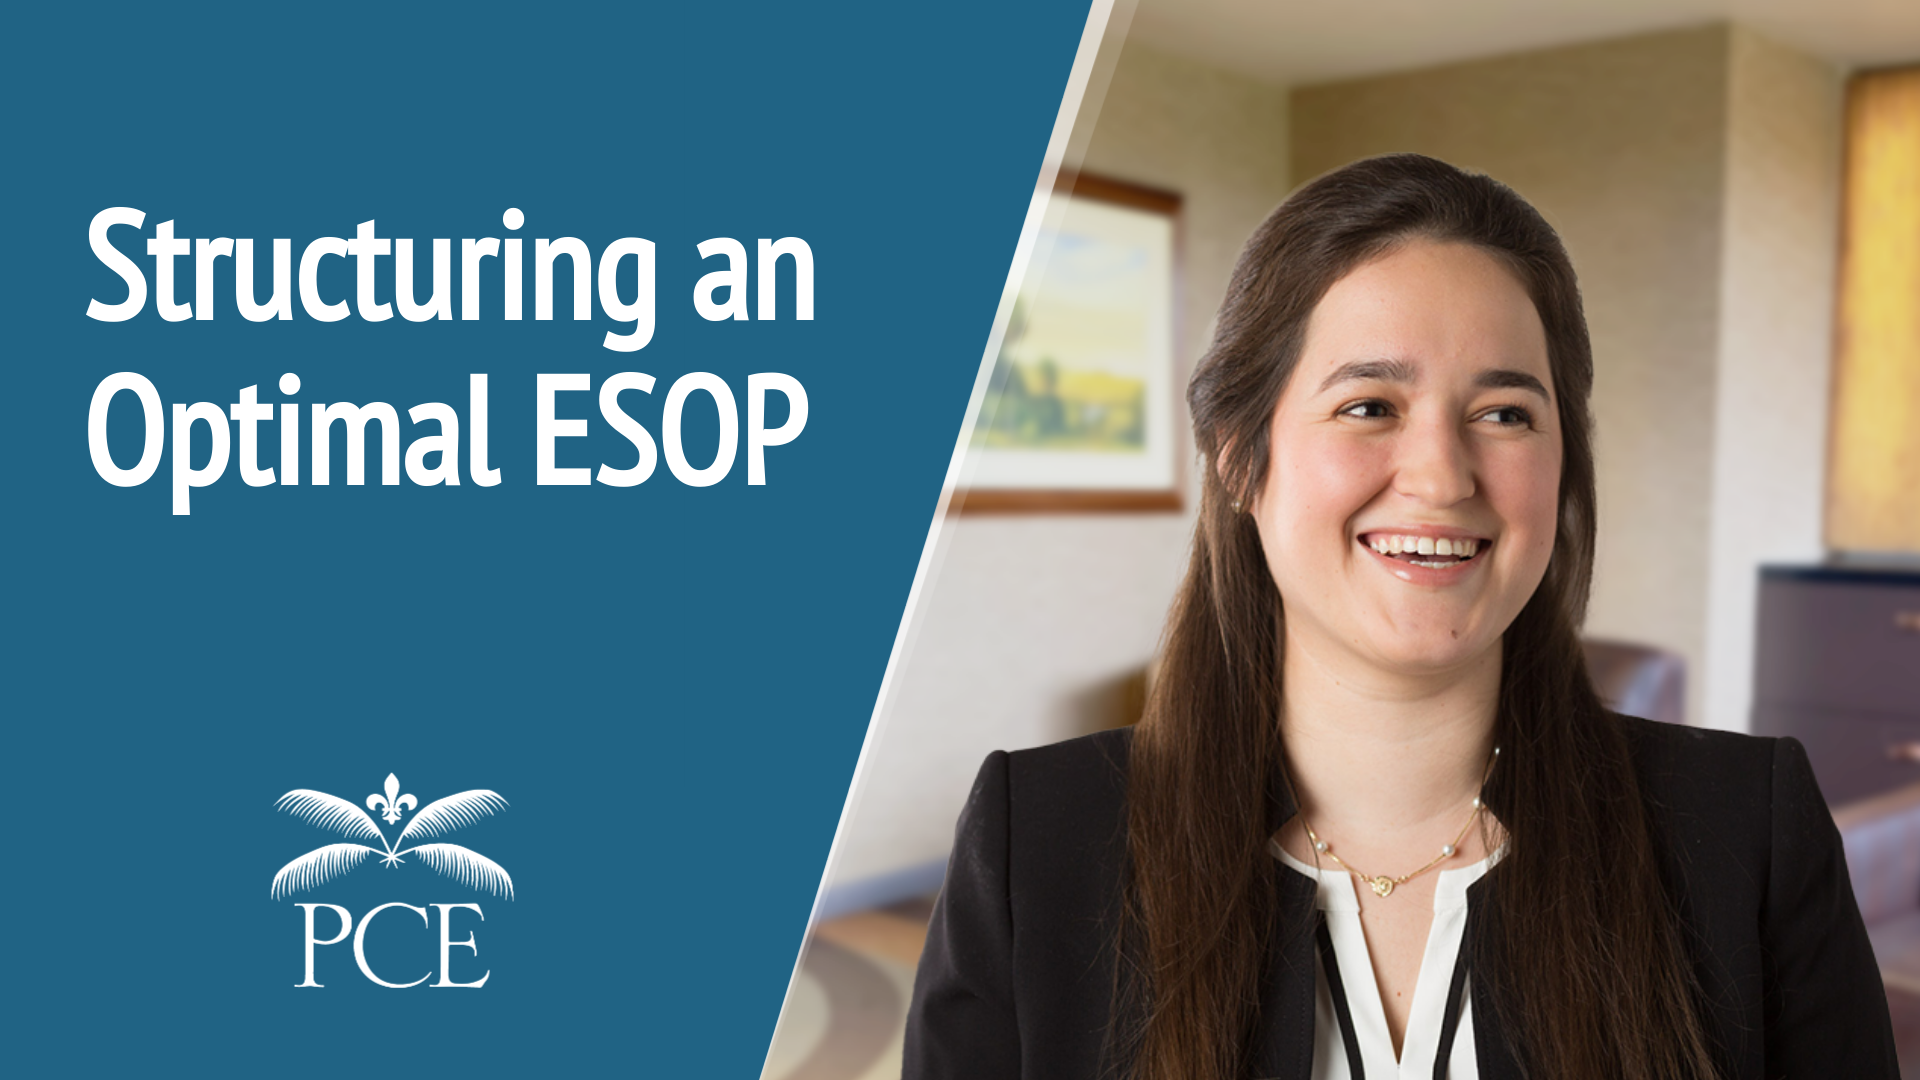 Structuring an Optimal ESOP